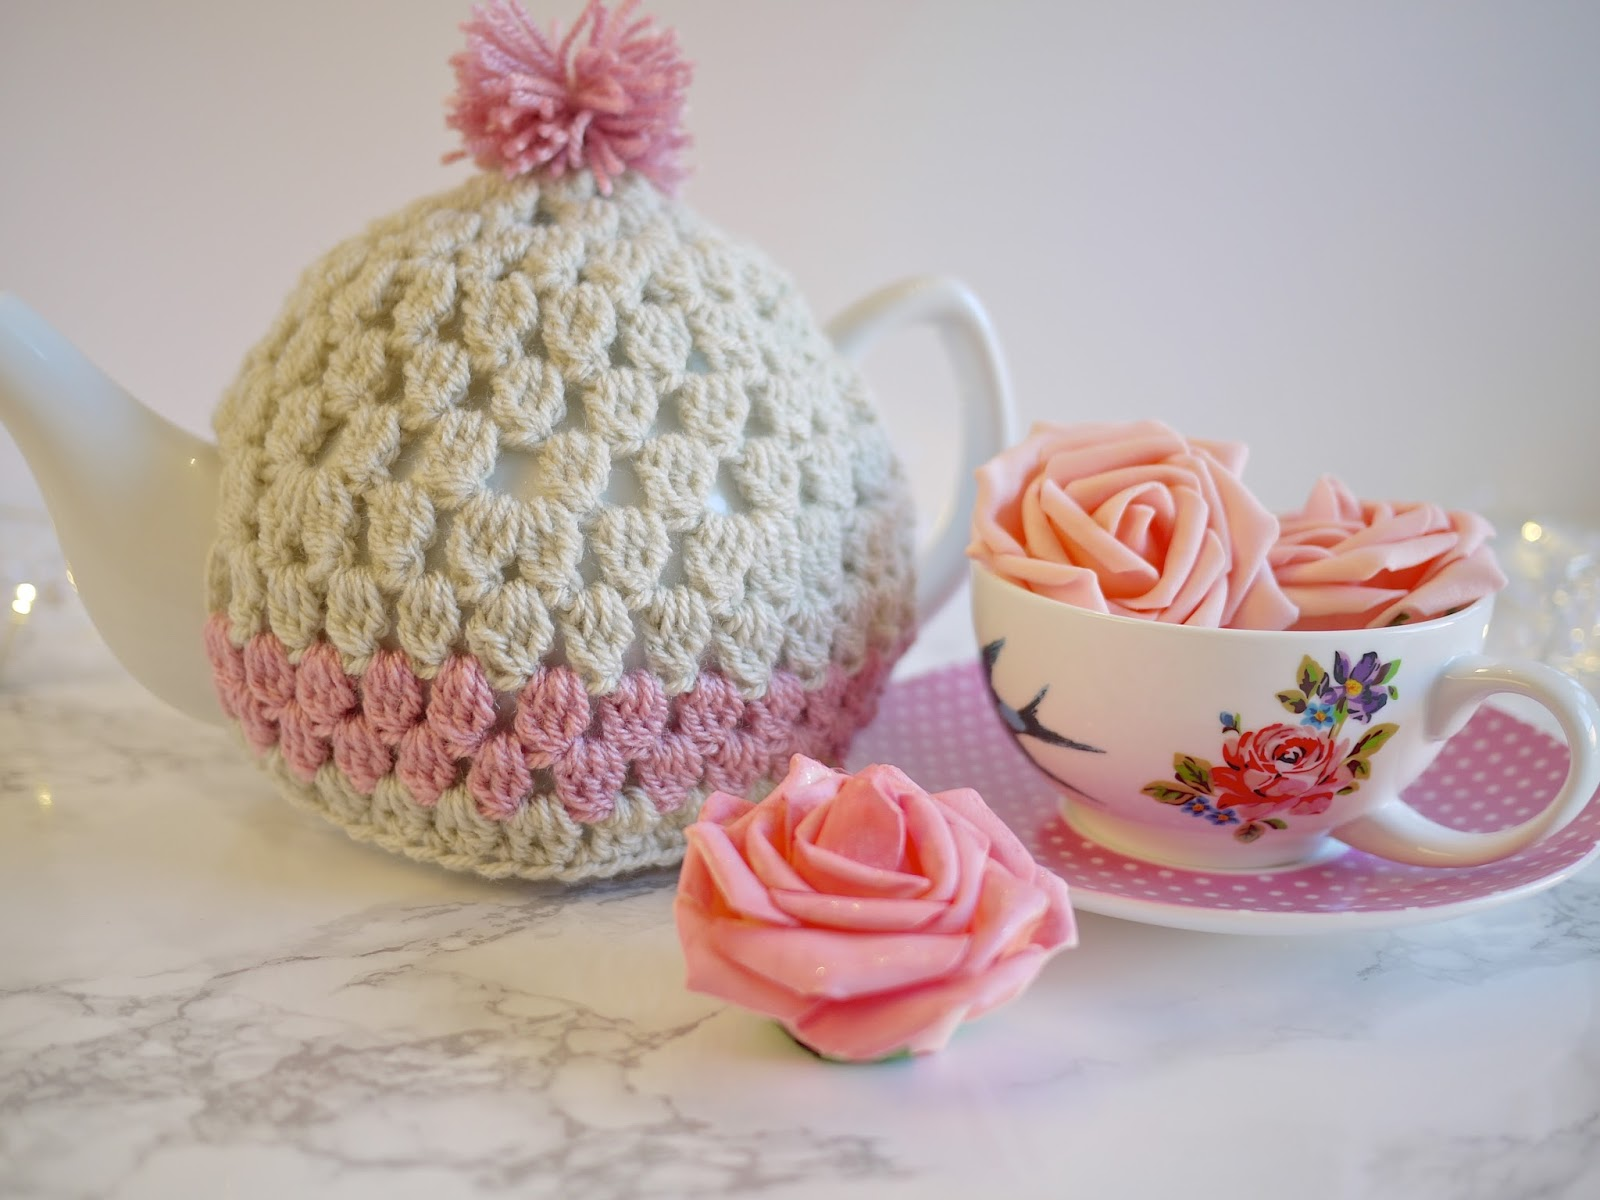 Crochet Tea Cosy Pattern - Bella Coco by Sarah-Jayne